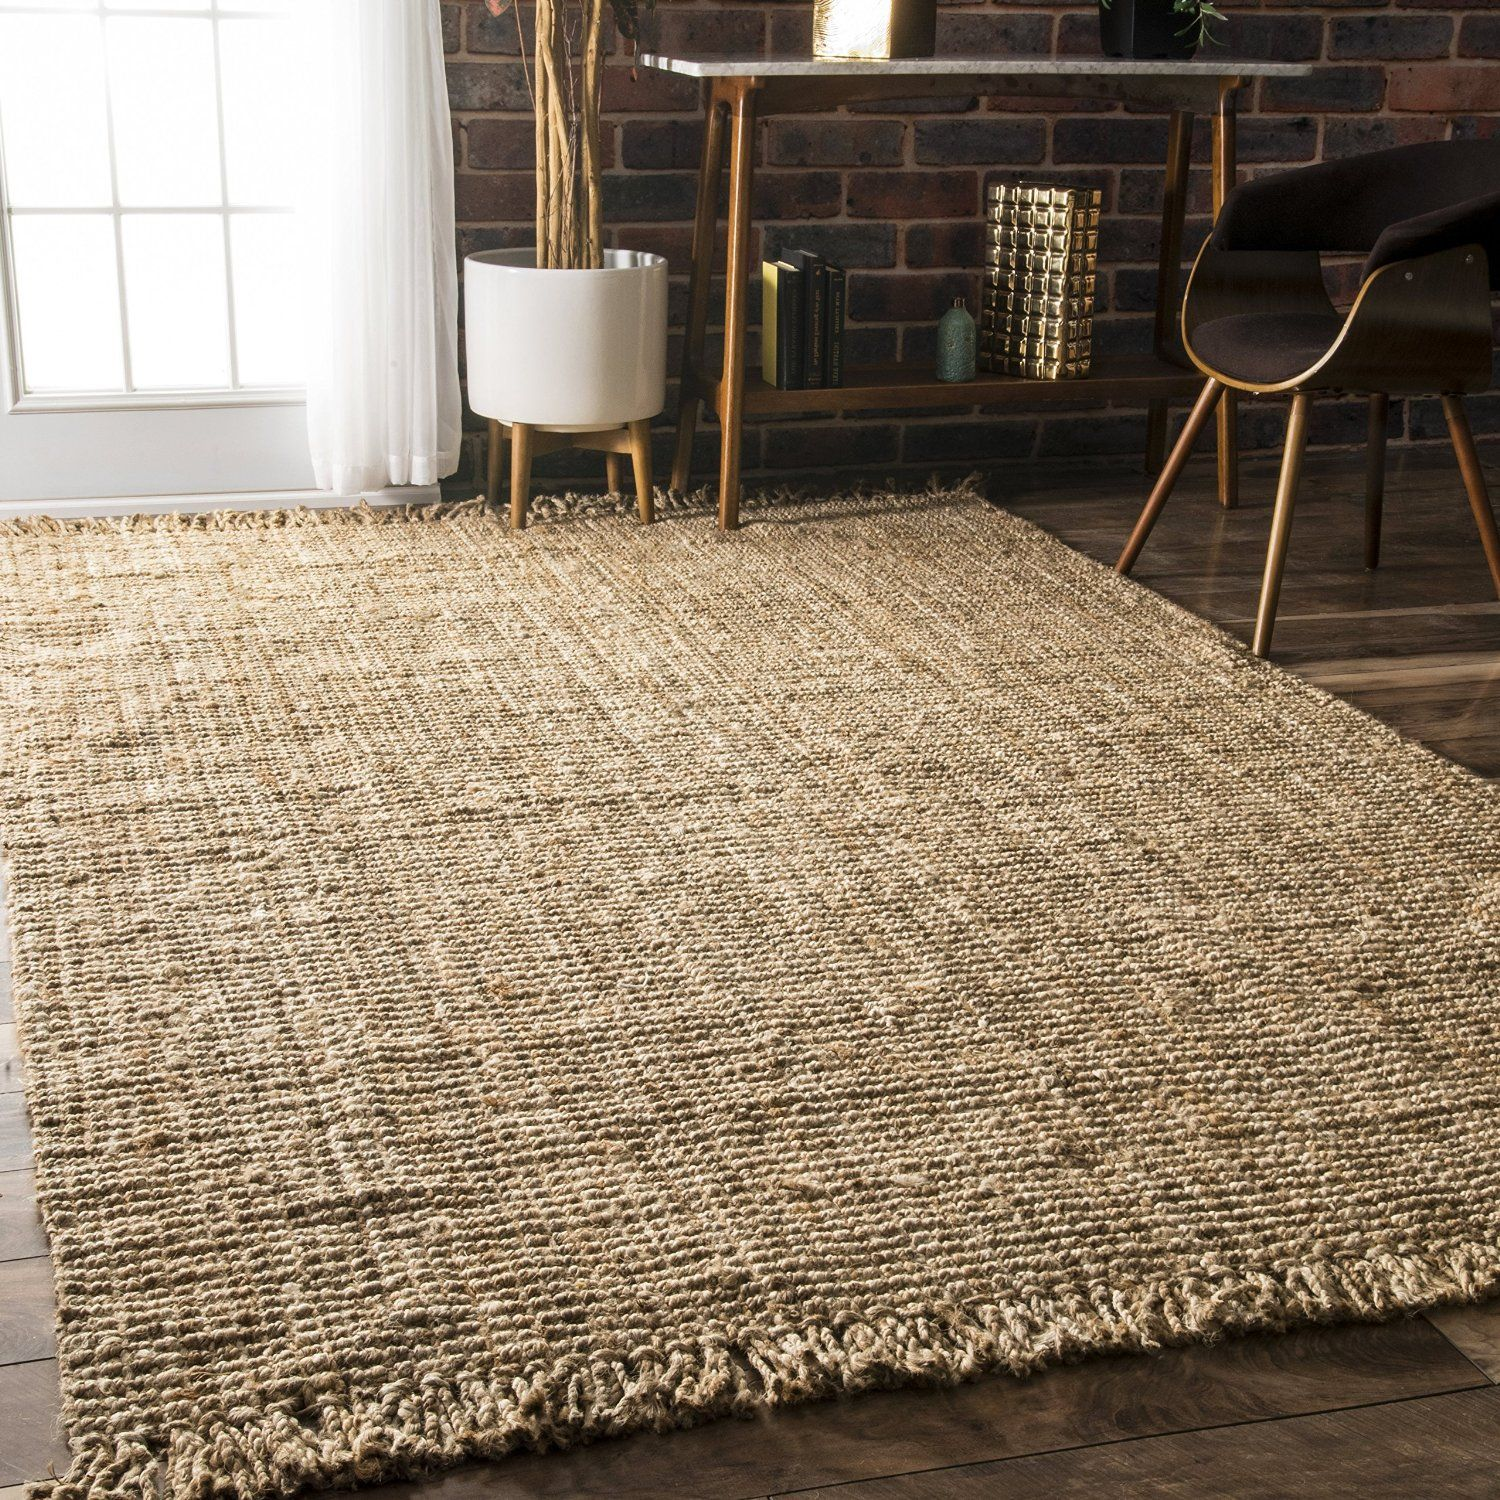 Smile Nuloom Natural Collection Chunky Loop Jute Casuals Fibers Hand Woven Area Rug